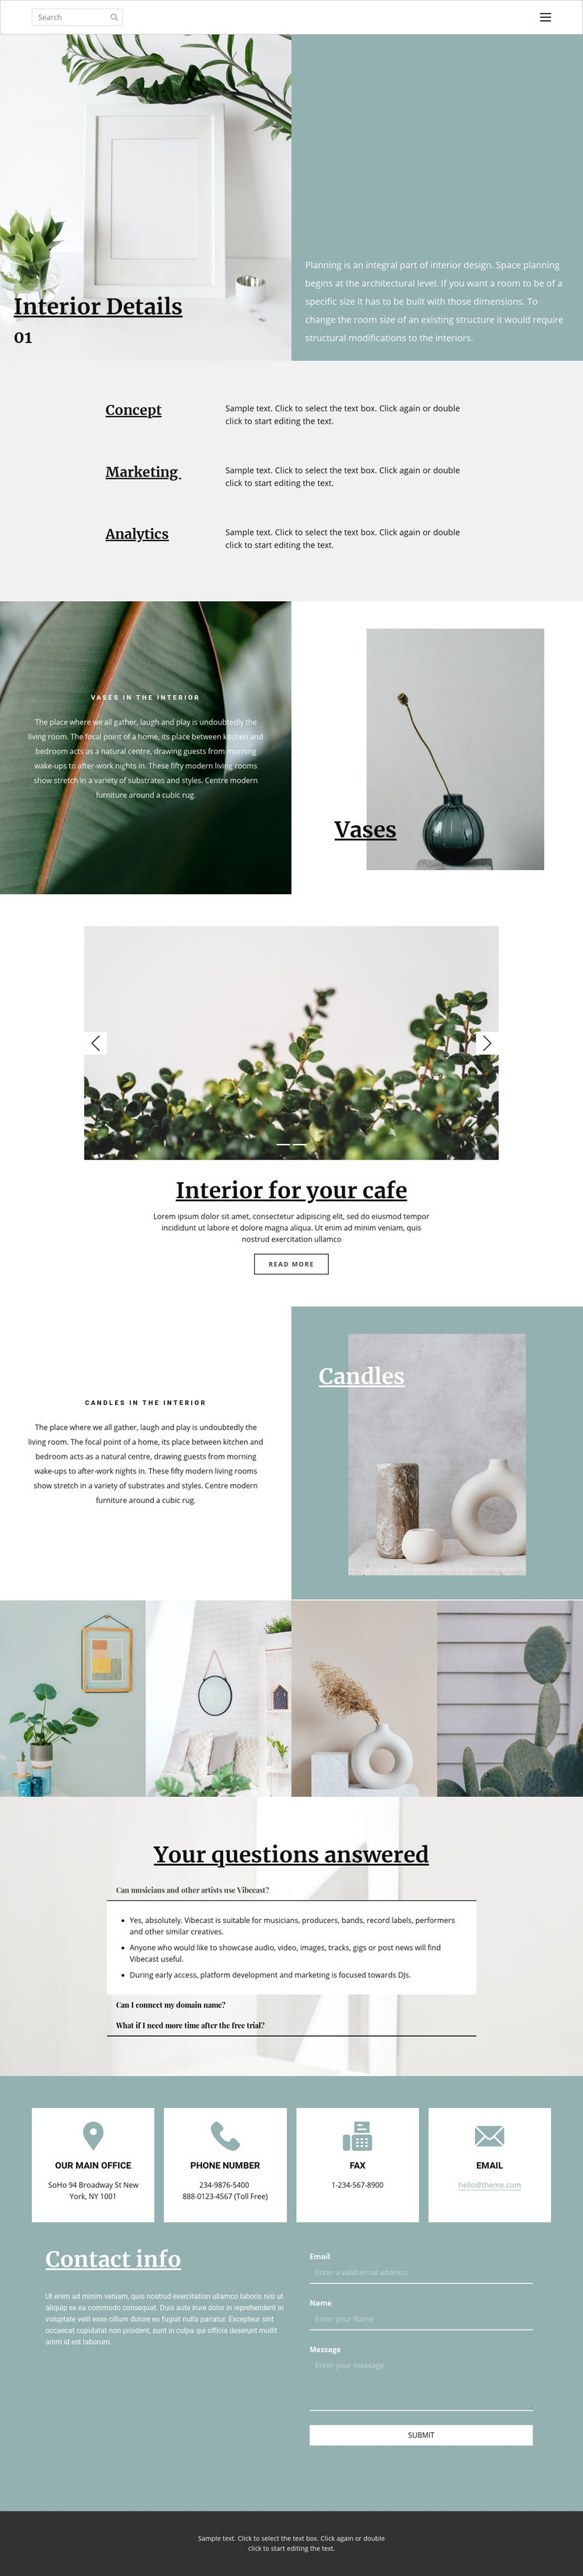 Help in organizing the space at home Html Code Example